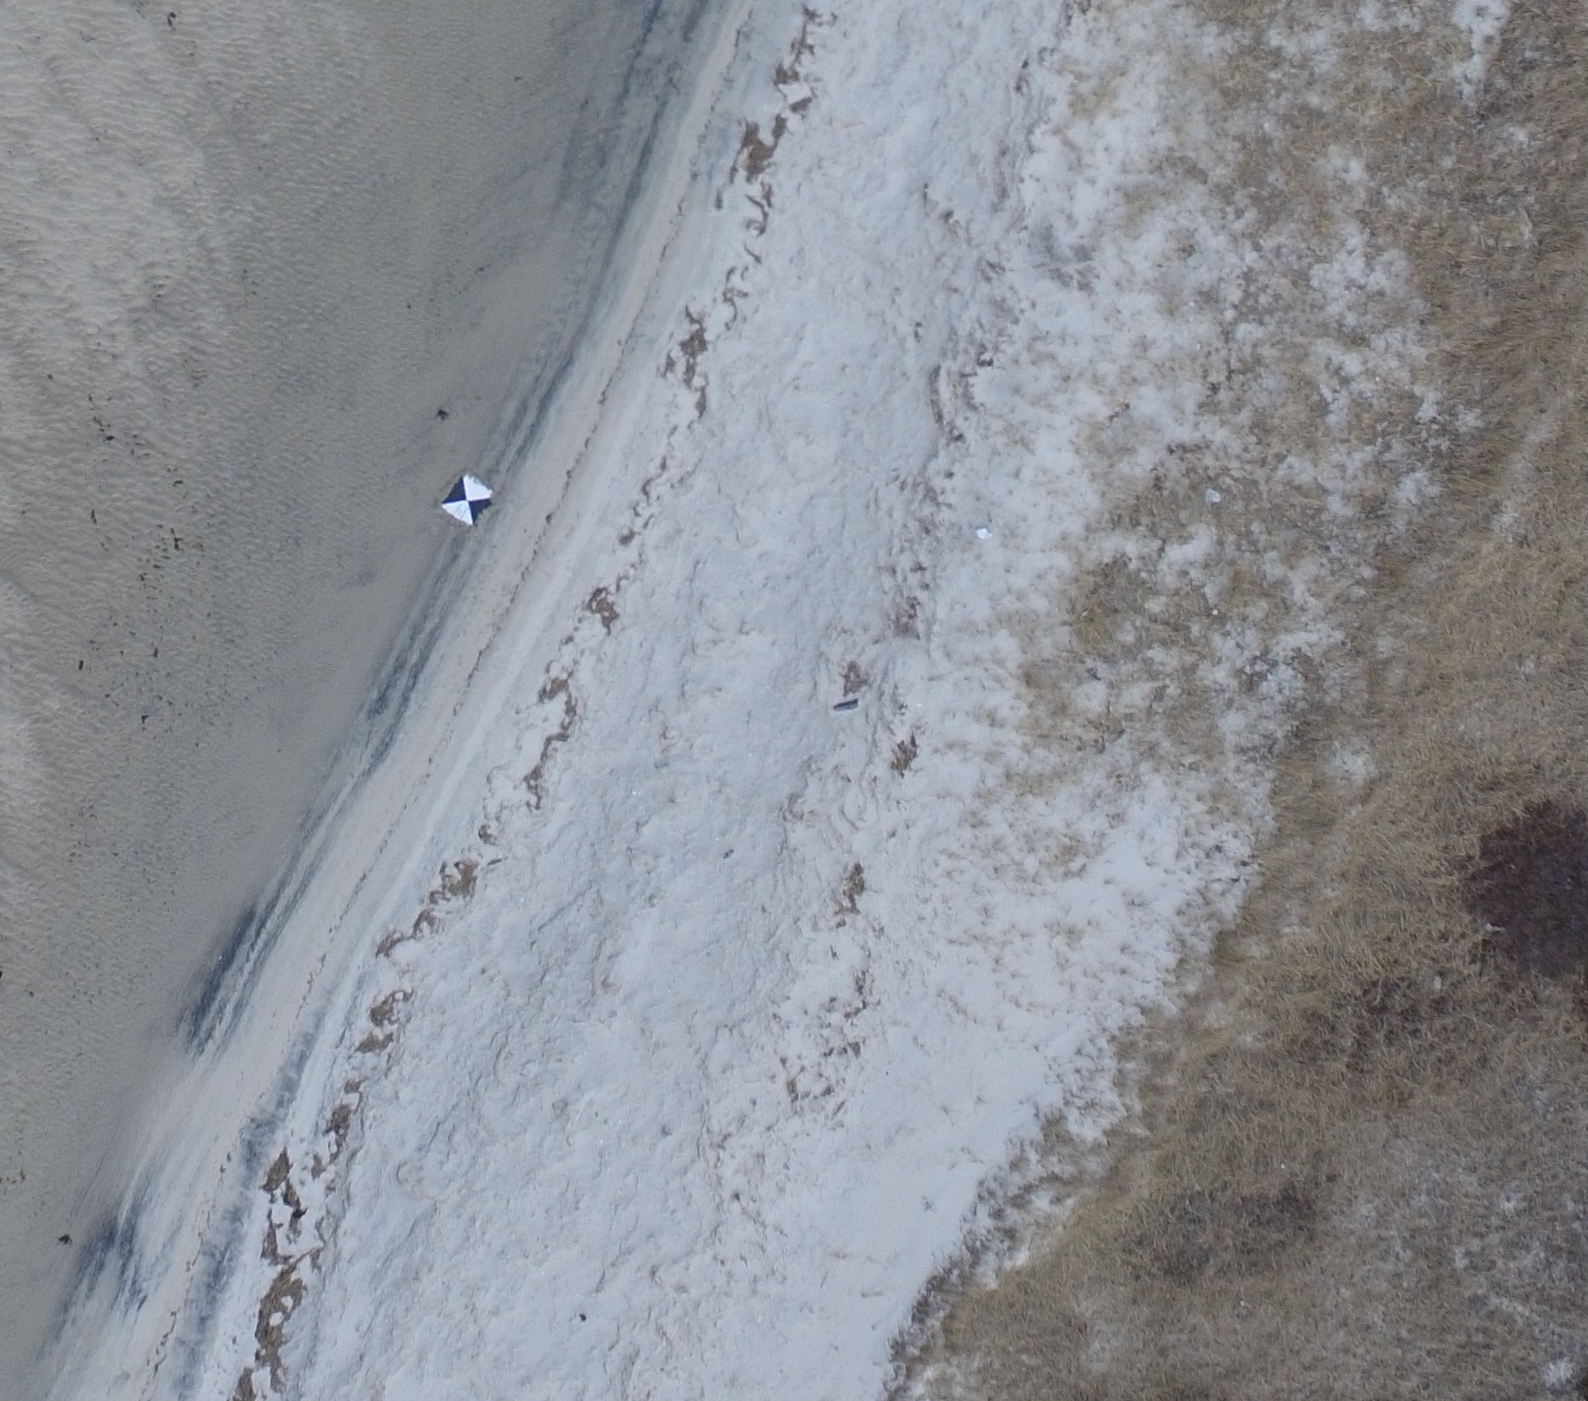 Example section of image acquired by DJI Phantom 3 on 18 March 2016 at Black Beach, Falmouth, MA. Section includes a target used for ground control.